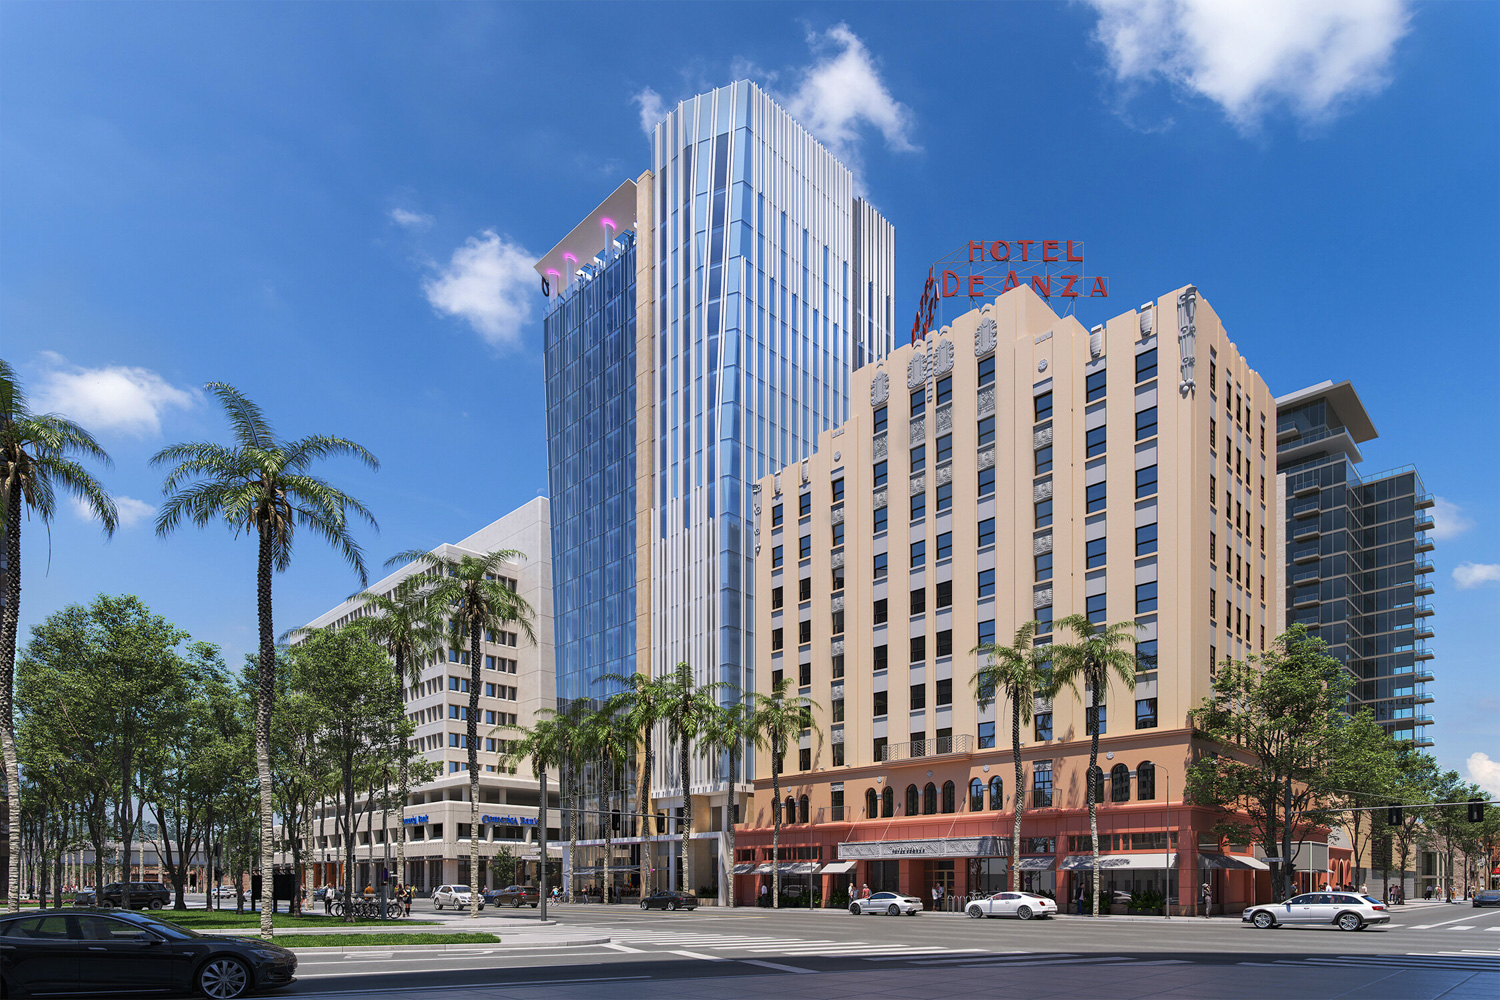 8 Almaden Boulevard beside the Hotel De Anza, rendering by C2K Architects